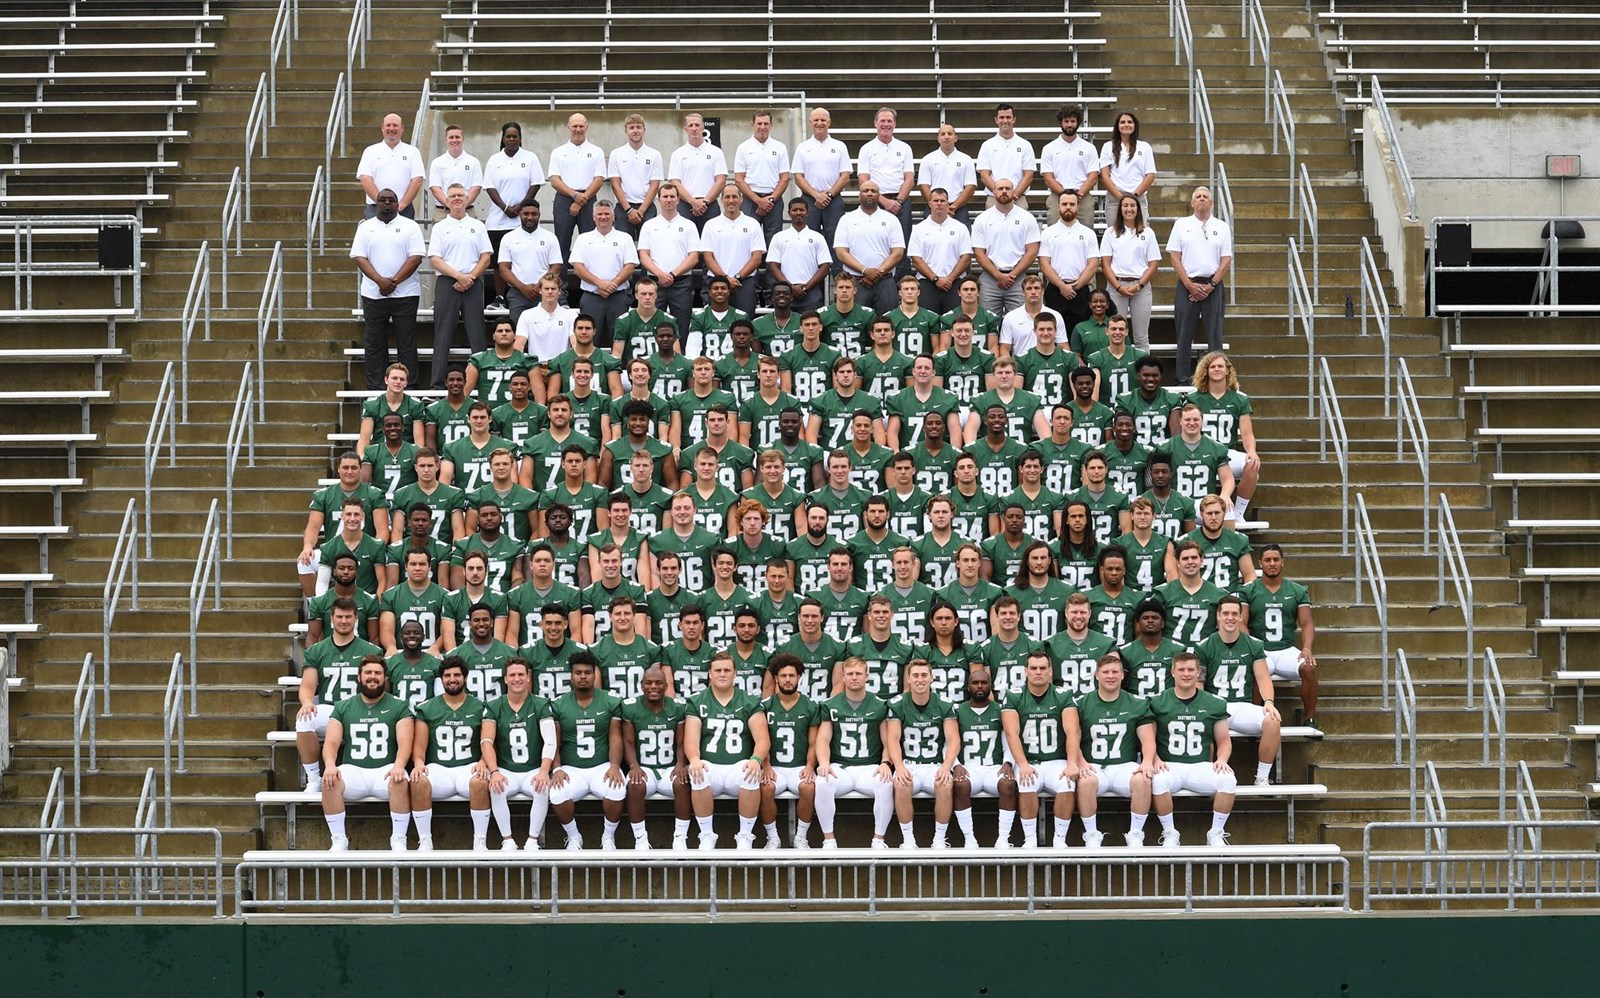 2018 Football Roster - Dartmouth College Athletics